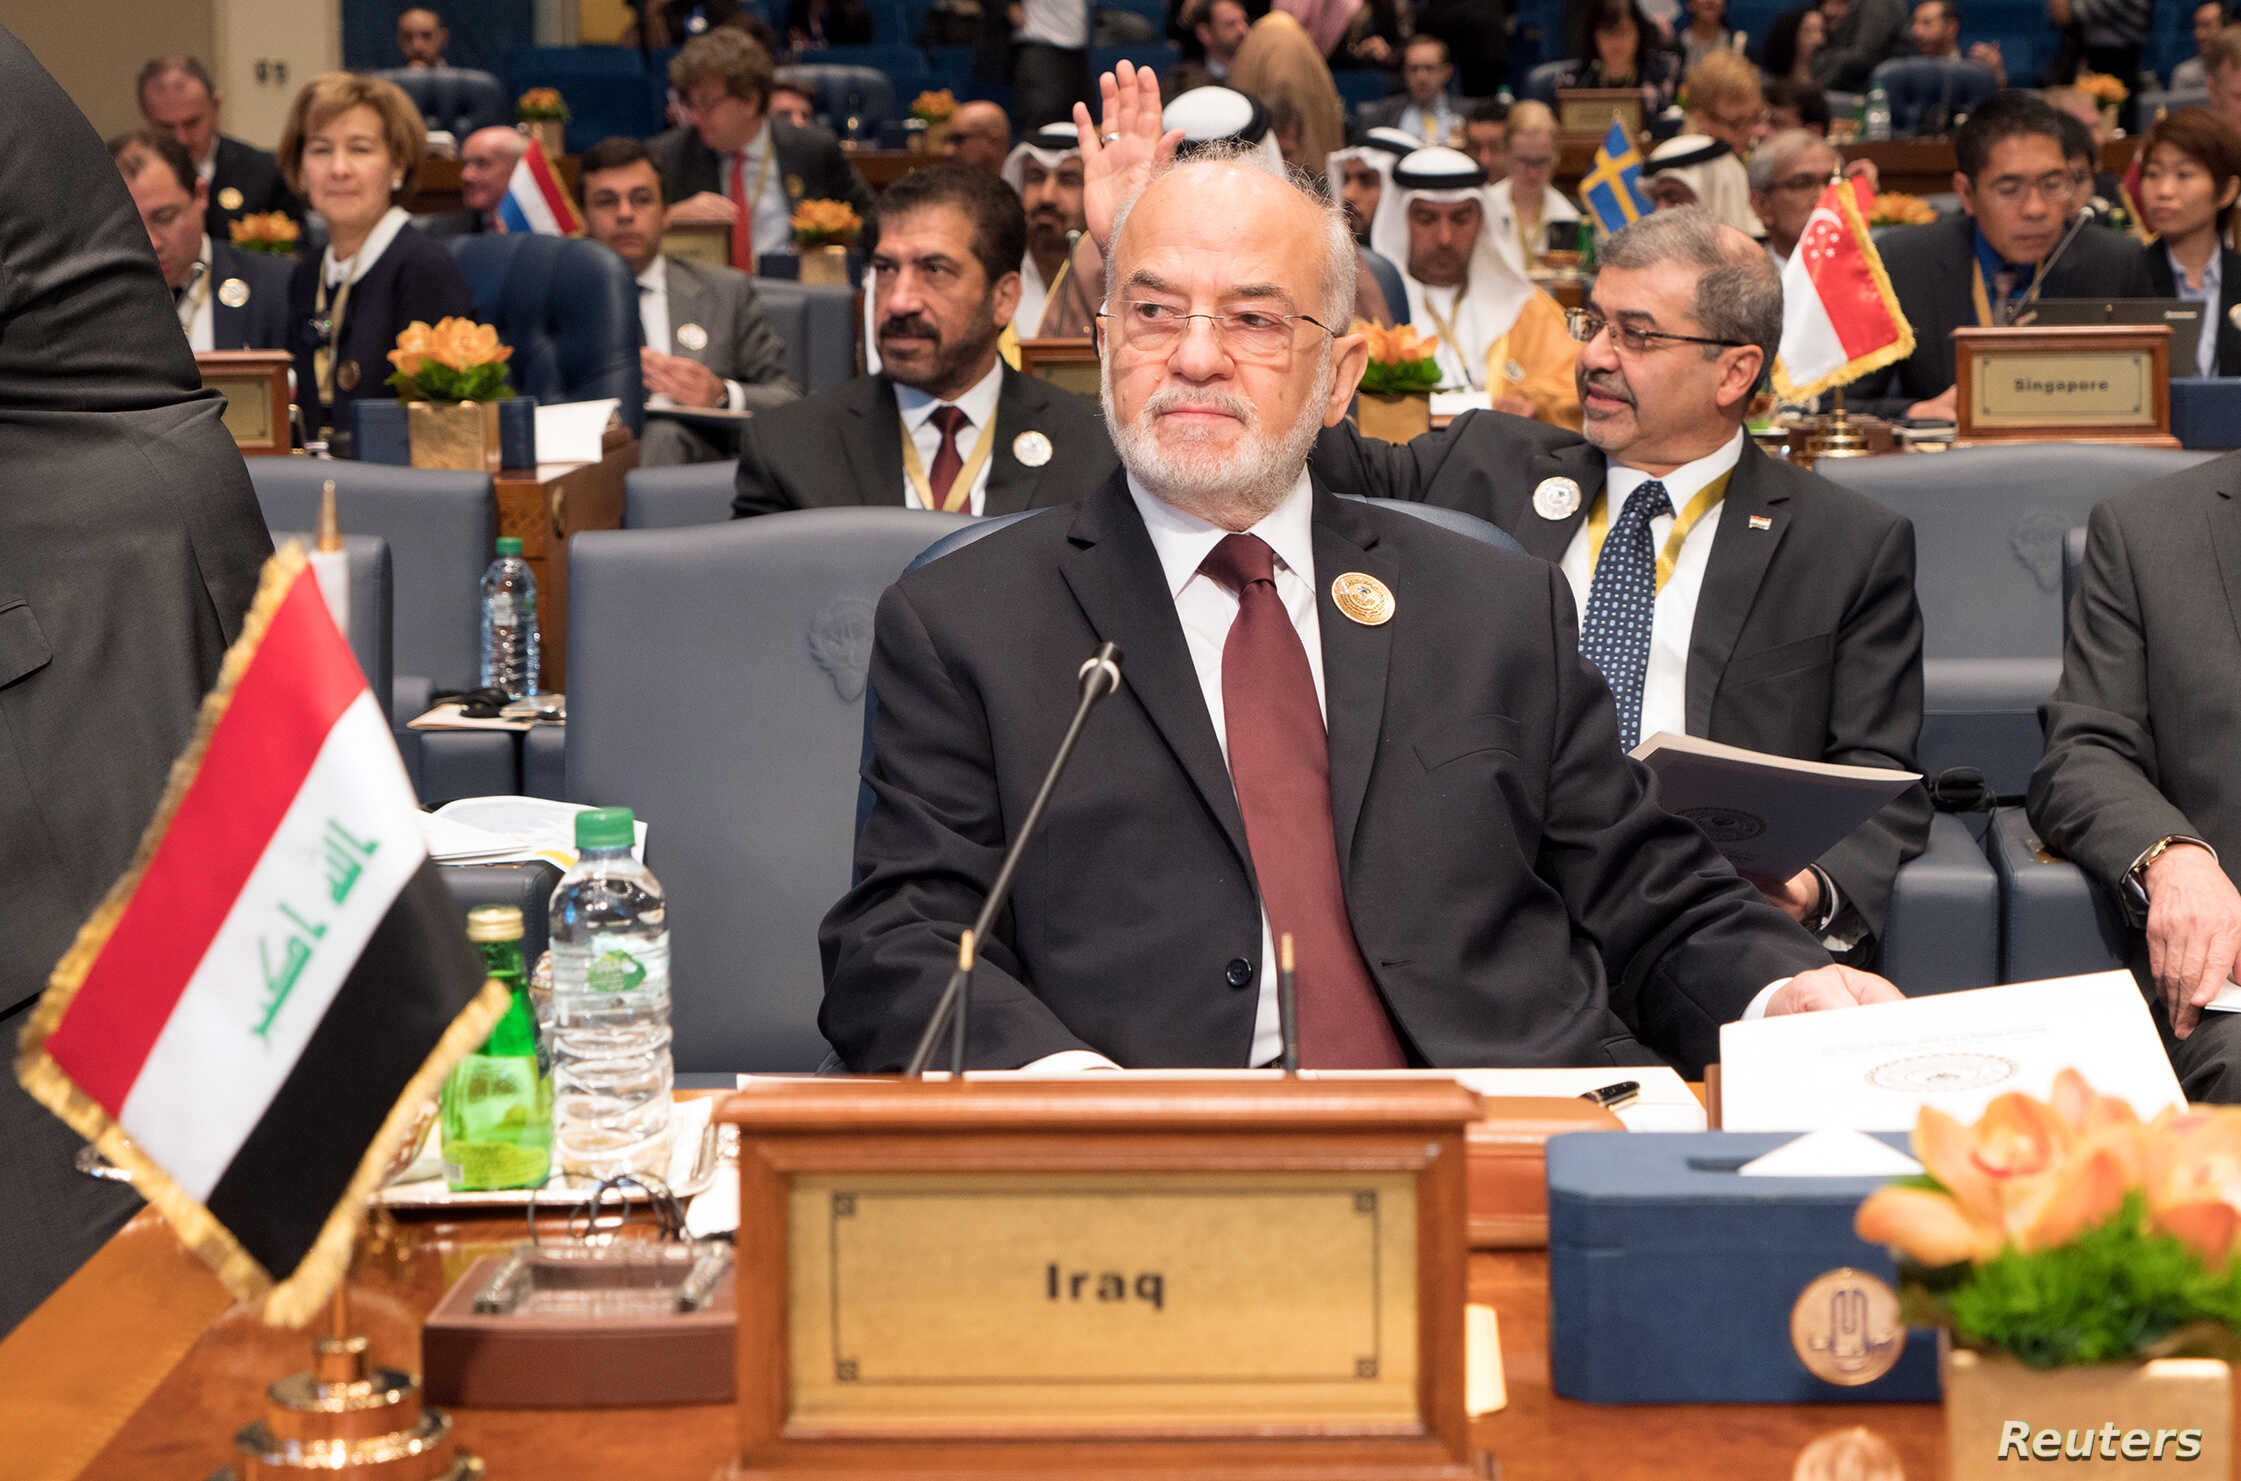 Iraq's Foreign Minister Ibrahim al-Jaafari attends the Kuwait International Conference for Reconstruction of Iraq, in Bayan, Kuwait, Feb. 13, 2018.